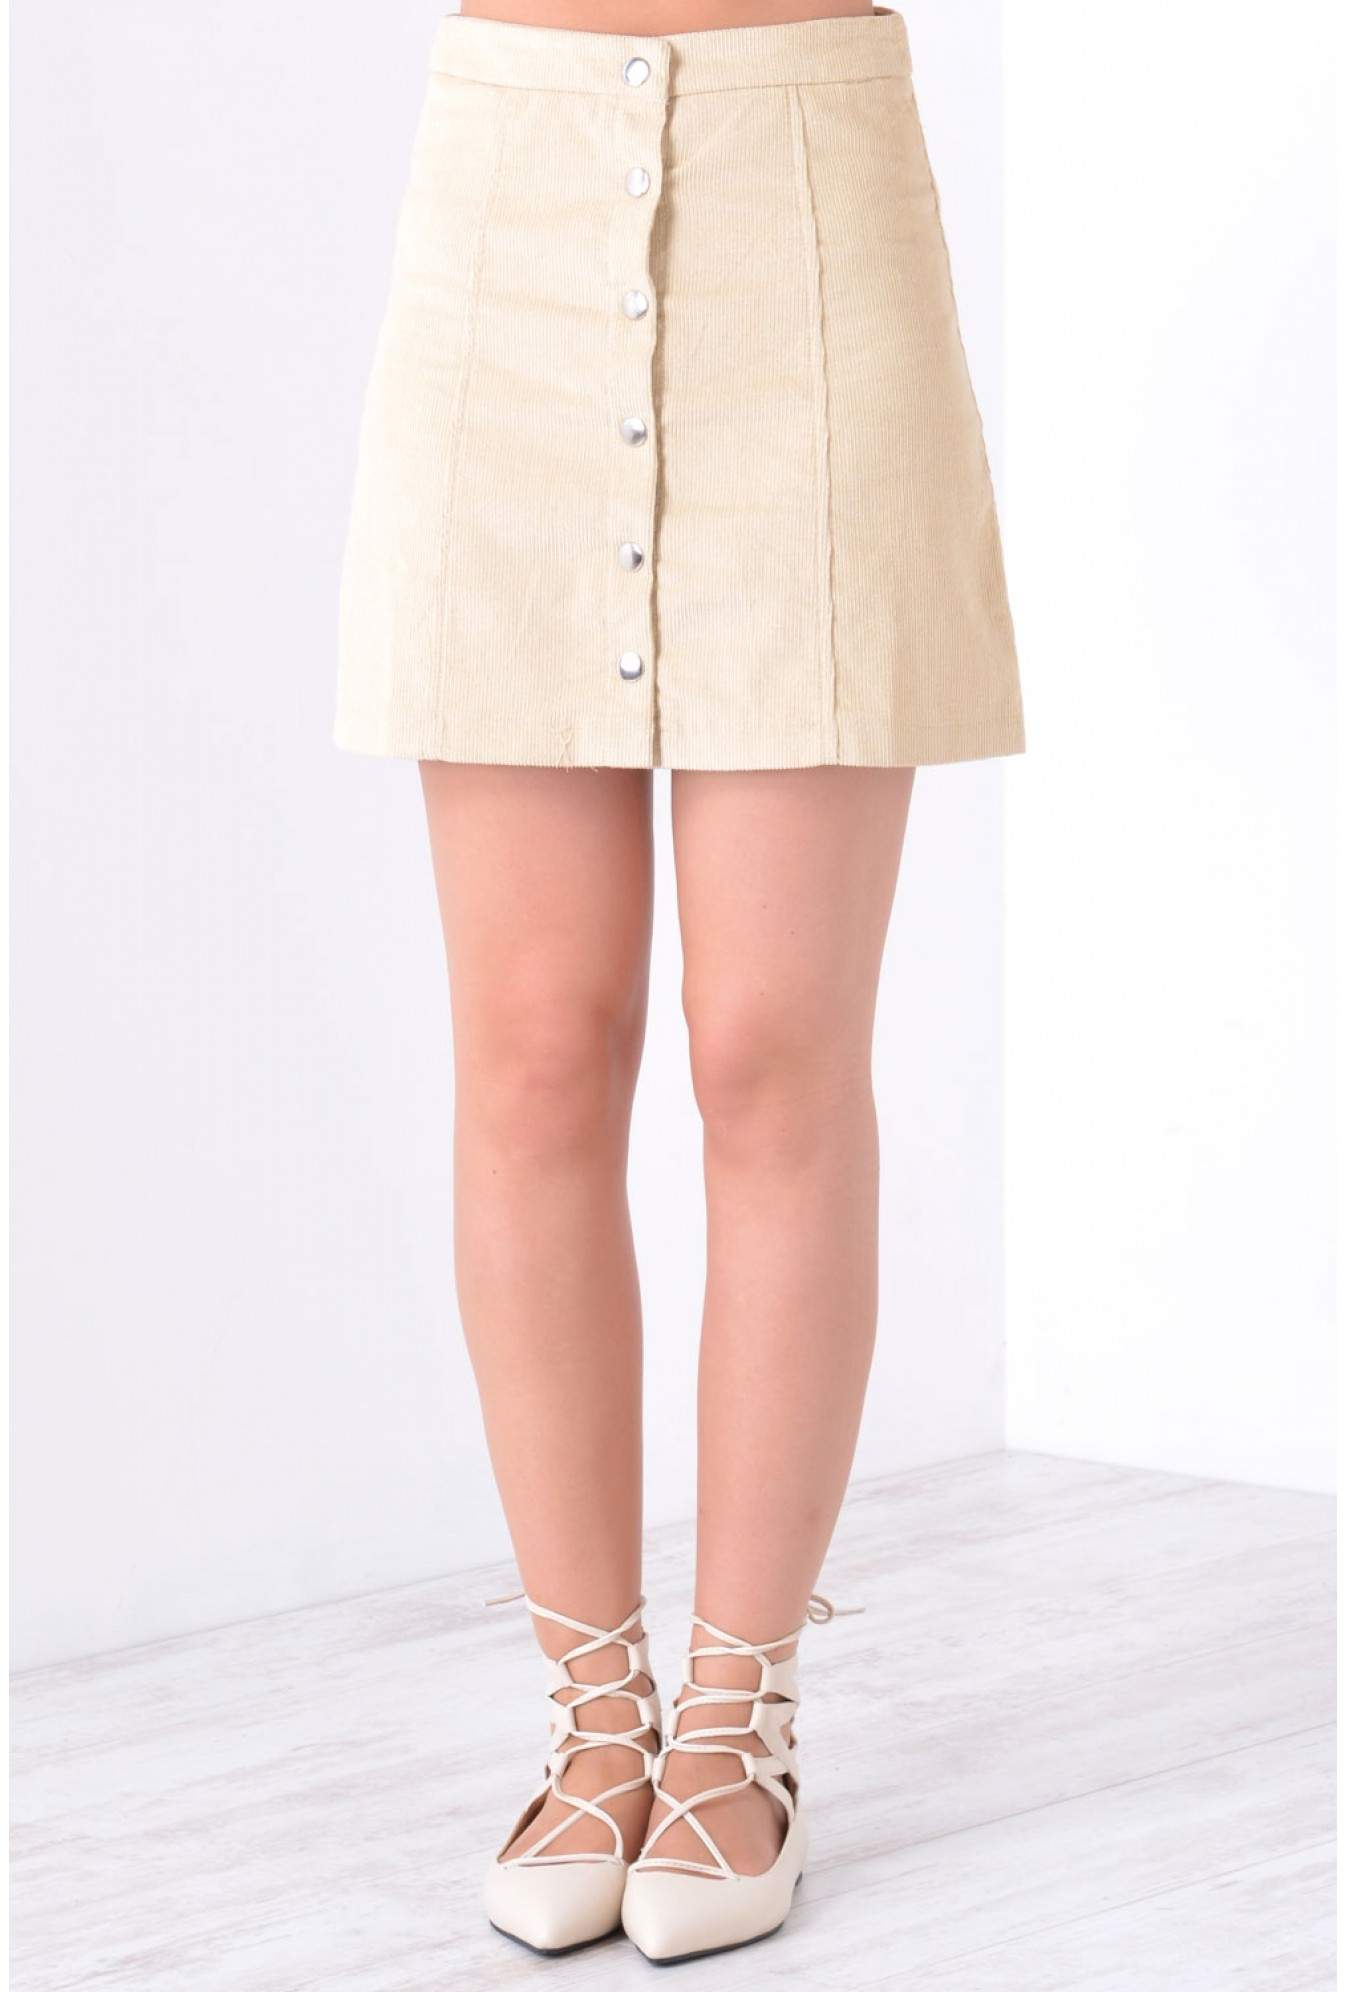 0dc2ec4b49 iCLOTHING Avril Button Front Mini Skirt in Stone | iCLOTHING